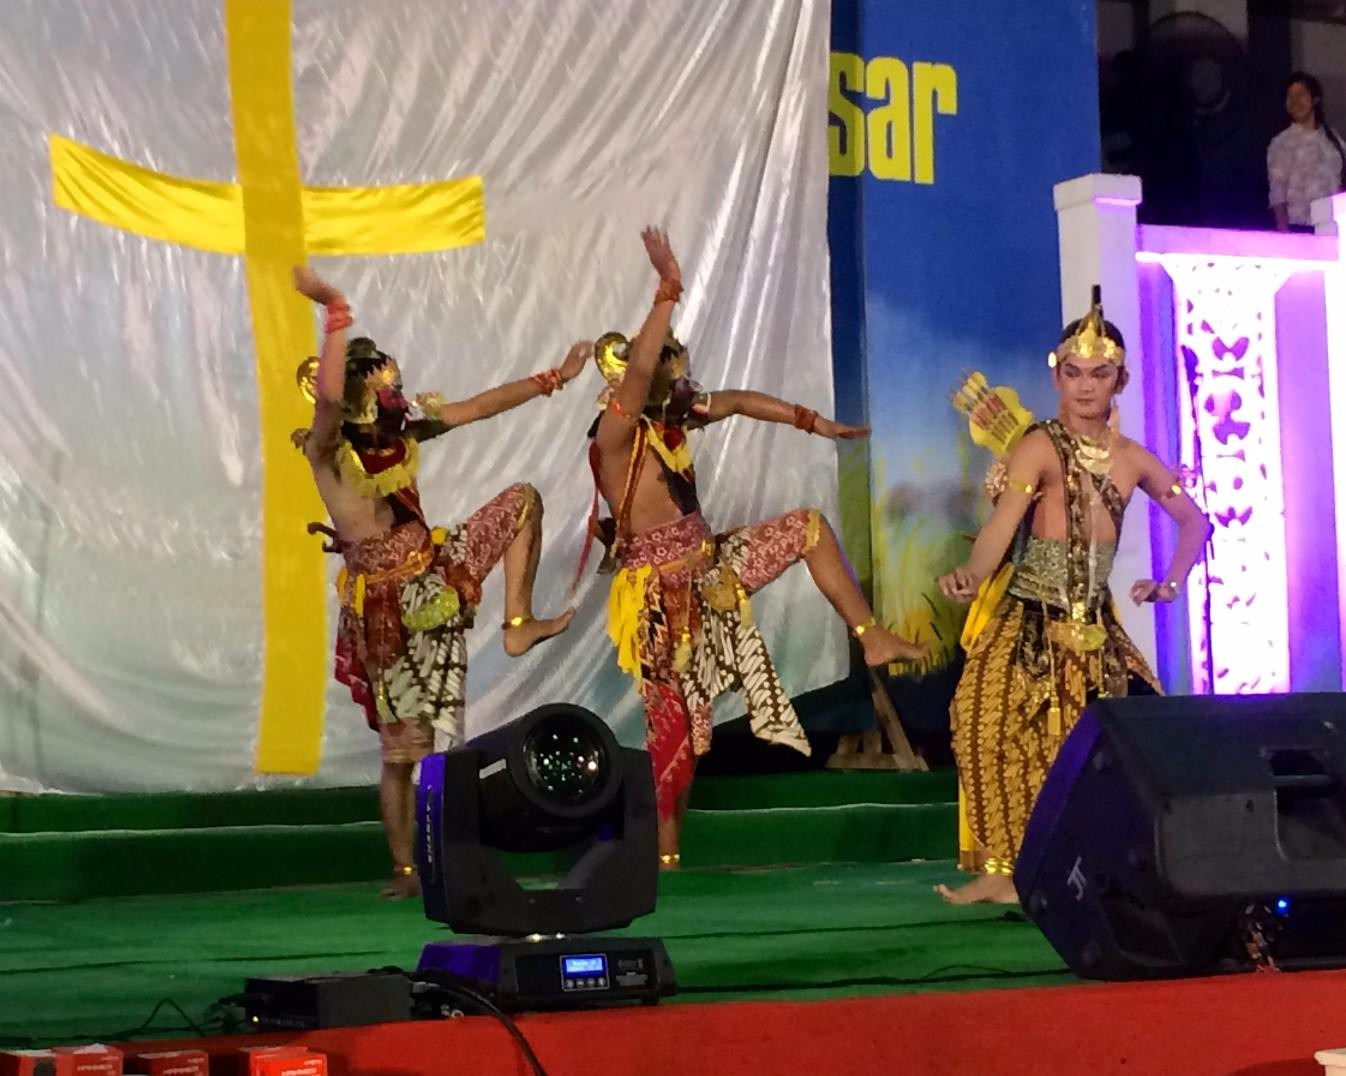 The forces of chaos and conflict meet harmony and reconciliation in a traditional dance at the Indonesian Baptists' anniversary celebration. Which one represents the missionary?